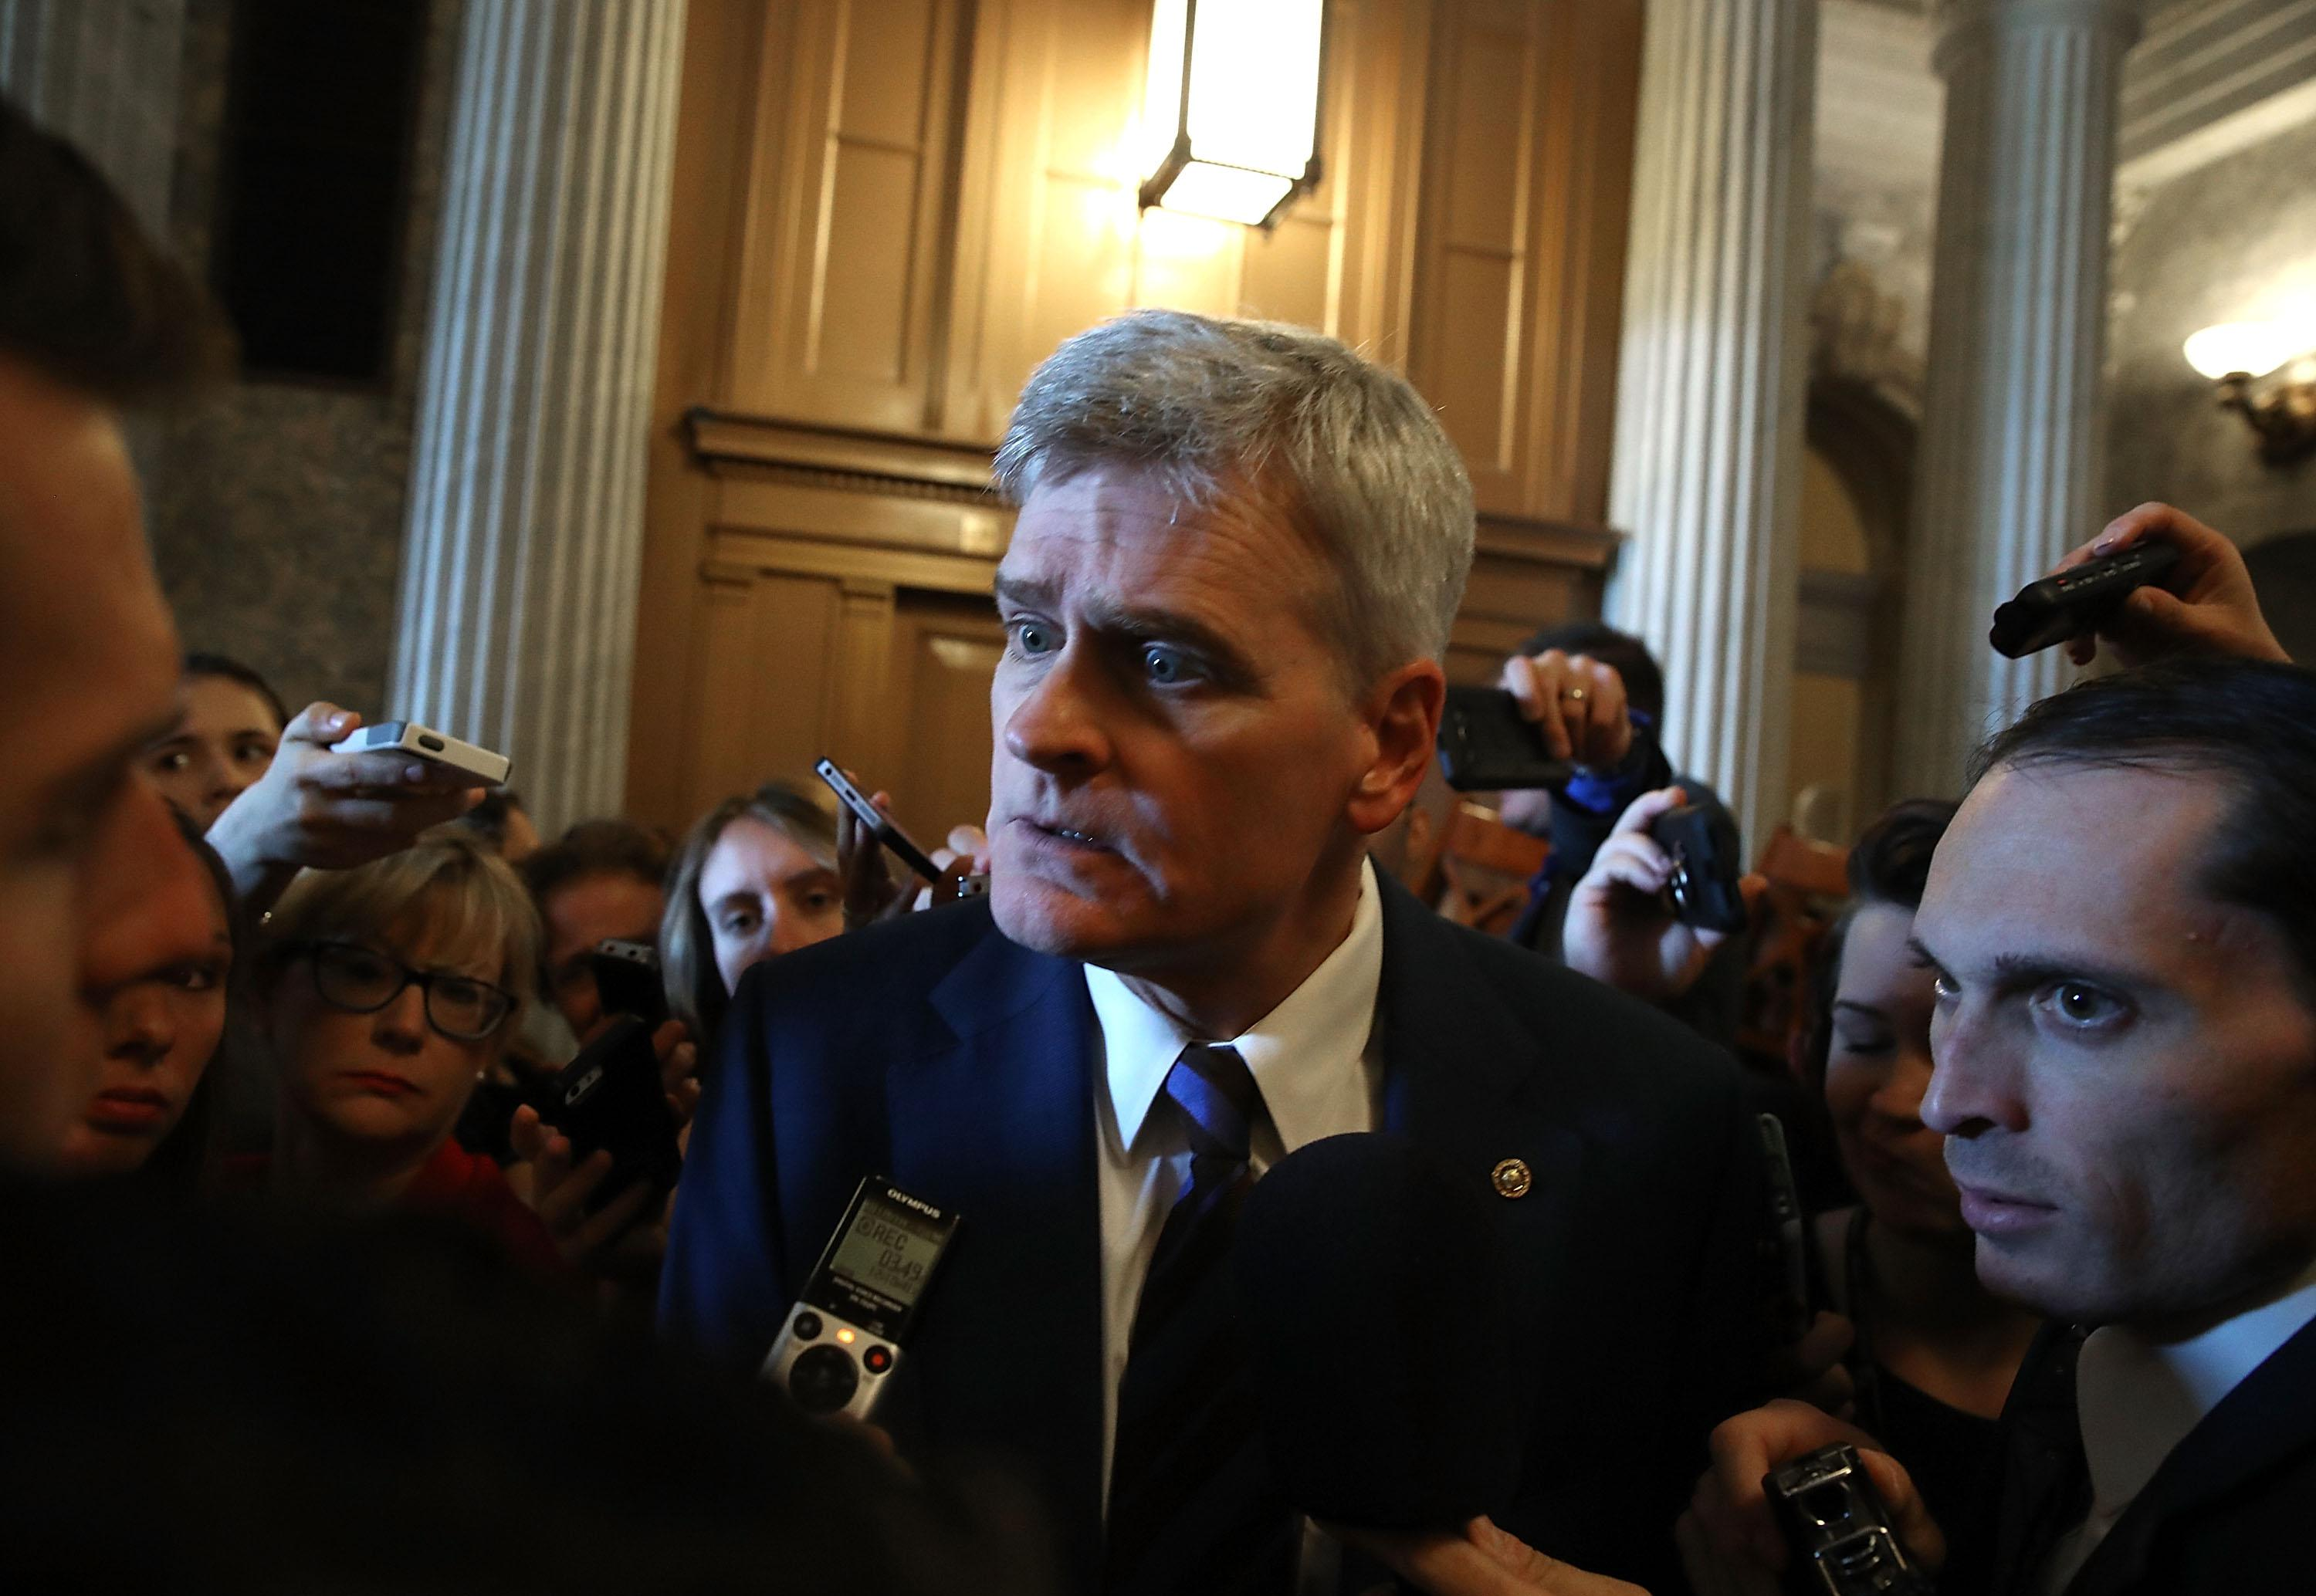 WASHINGTON, DC - JUNE 22:  Senator Bill Cassidy (R-LA) speaks to reporters after attending a closed meeting with Senate Republicans on Capitol Hill, on June 22, 2017 in Washington, DC. The meeting was held so Senate GOP lawmakers could get the first look at the health care bill intended to replace the Affordable Care Act.  (Photo by Mark Wilson/Getty Images)